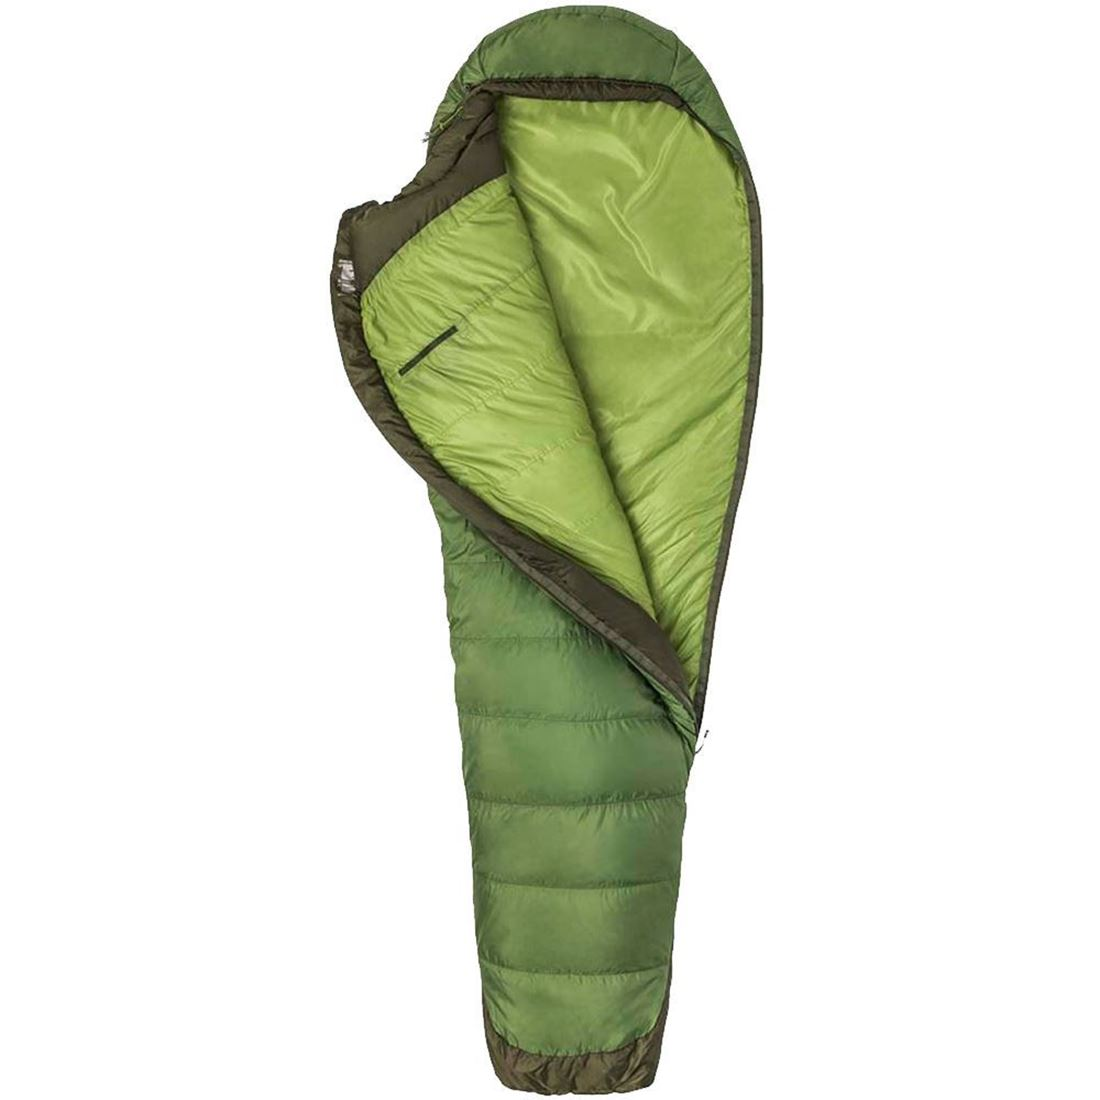 Marmot Trestles Elite Eco 30 Sleeping Bag (3 °C) - Half unzipped